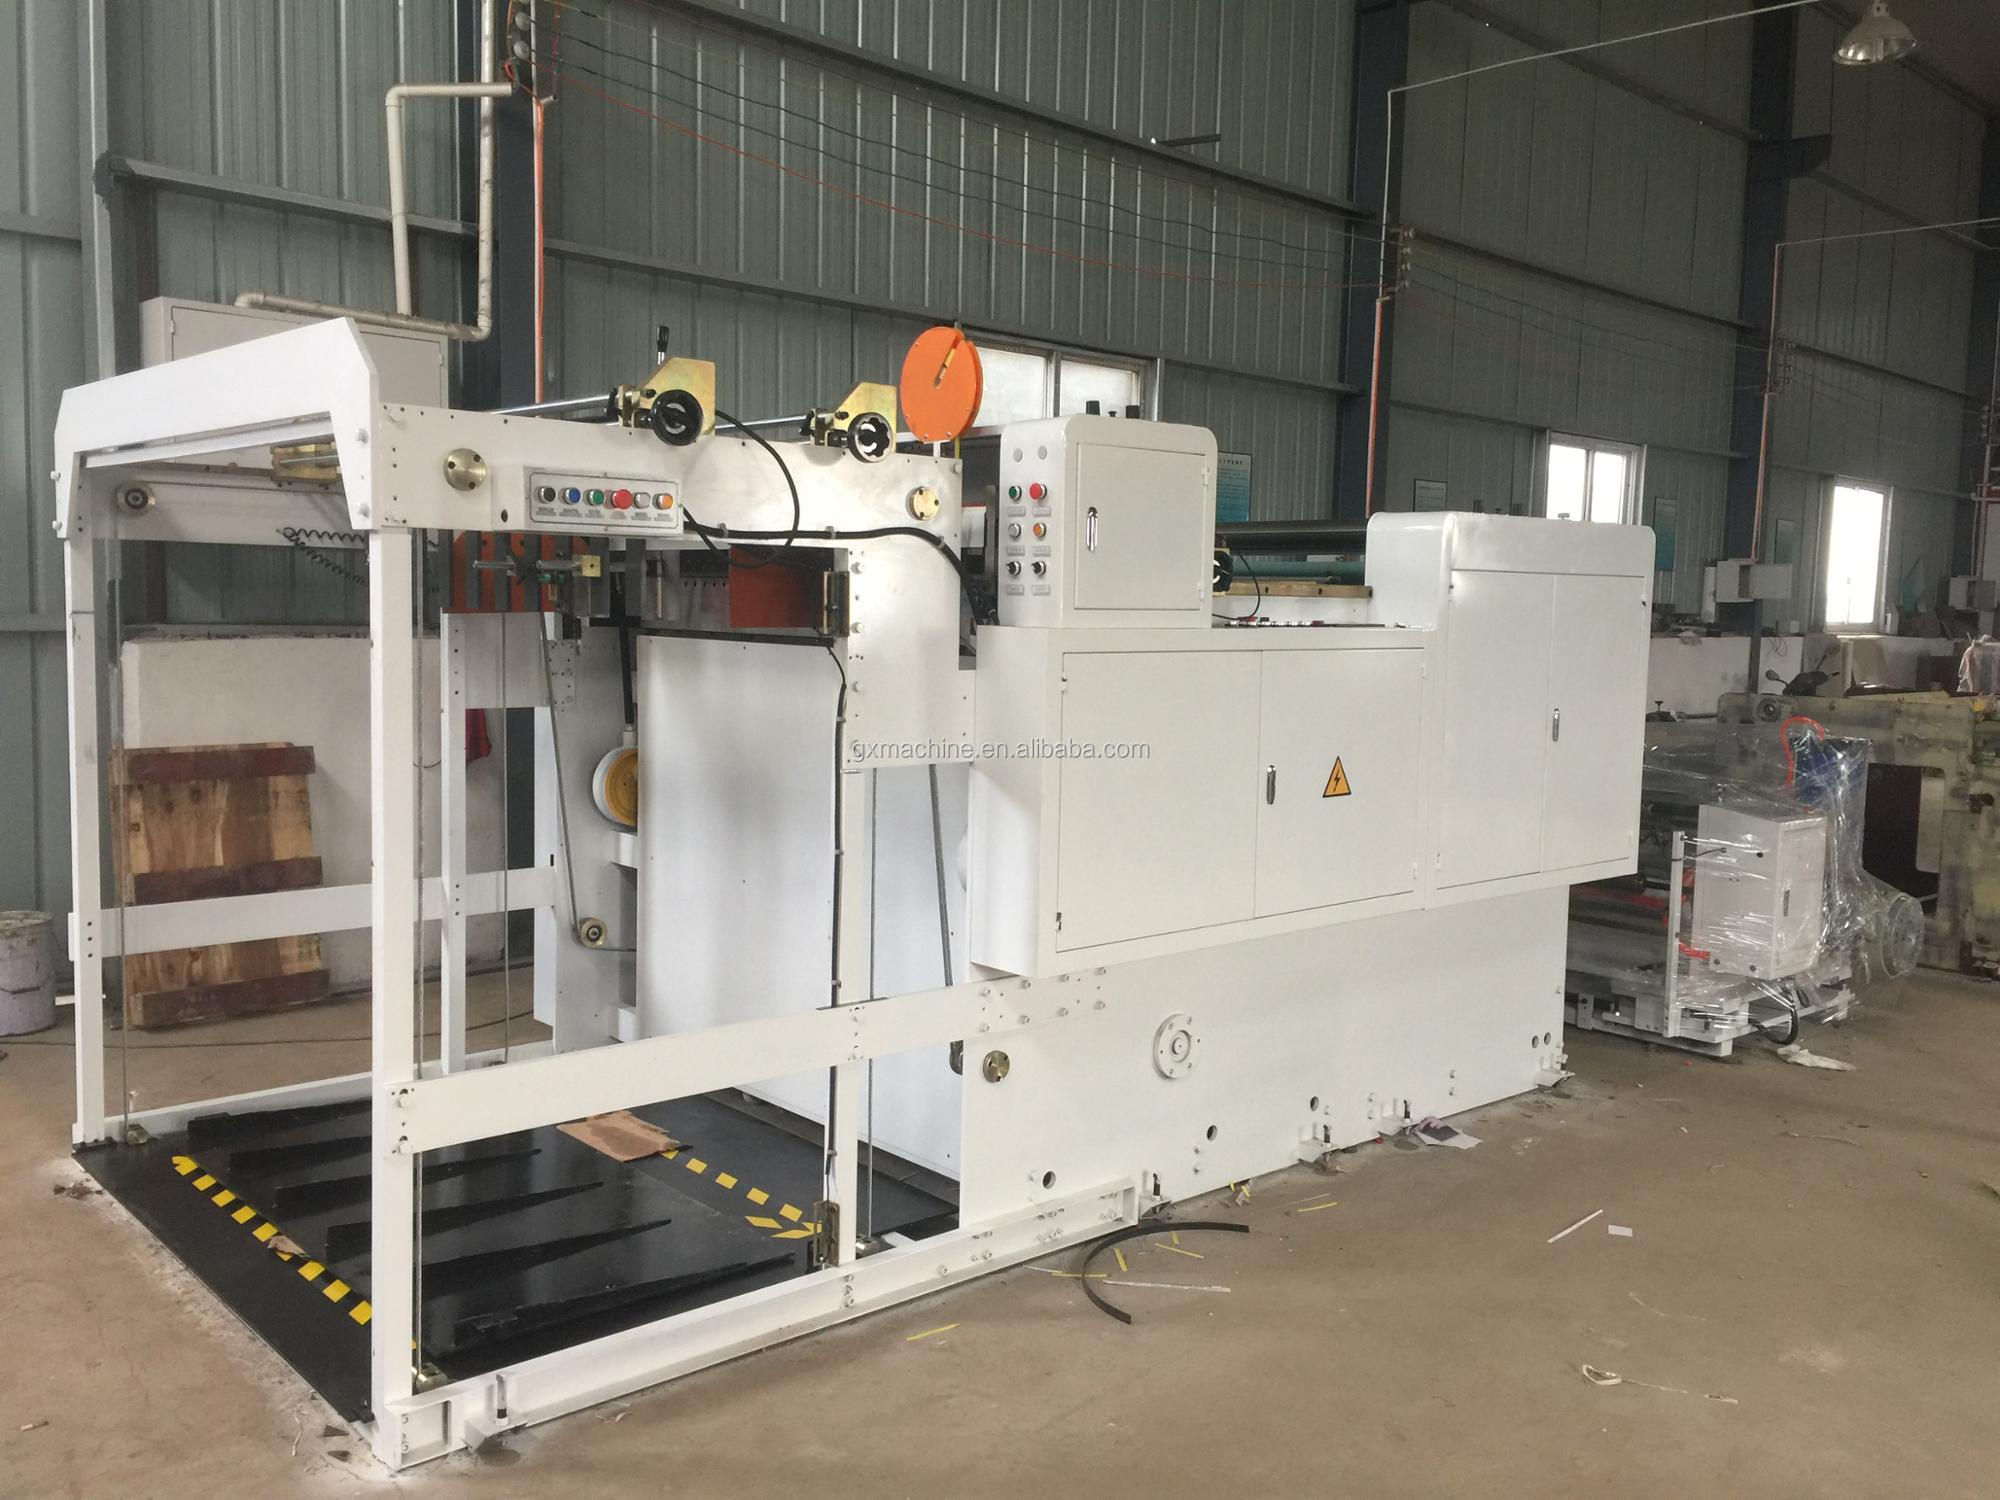 1100 Model Automatic Paper Cross Cutting Machine (auto stacking on pallets)